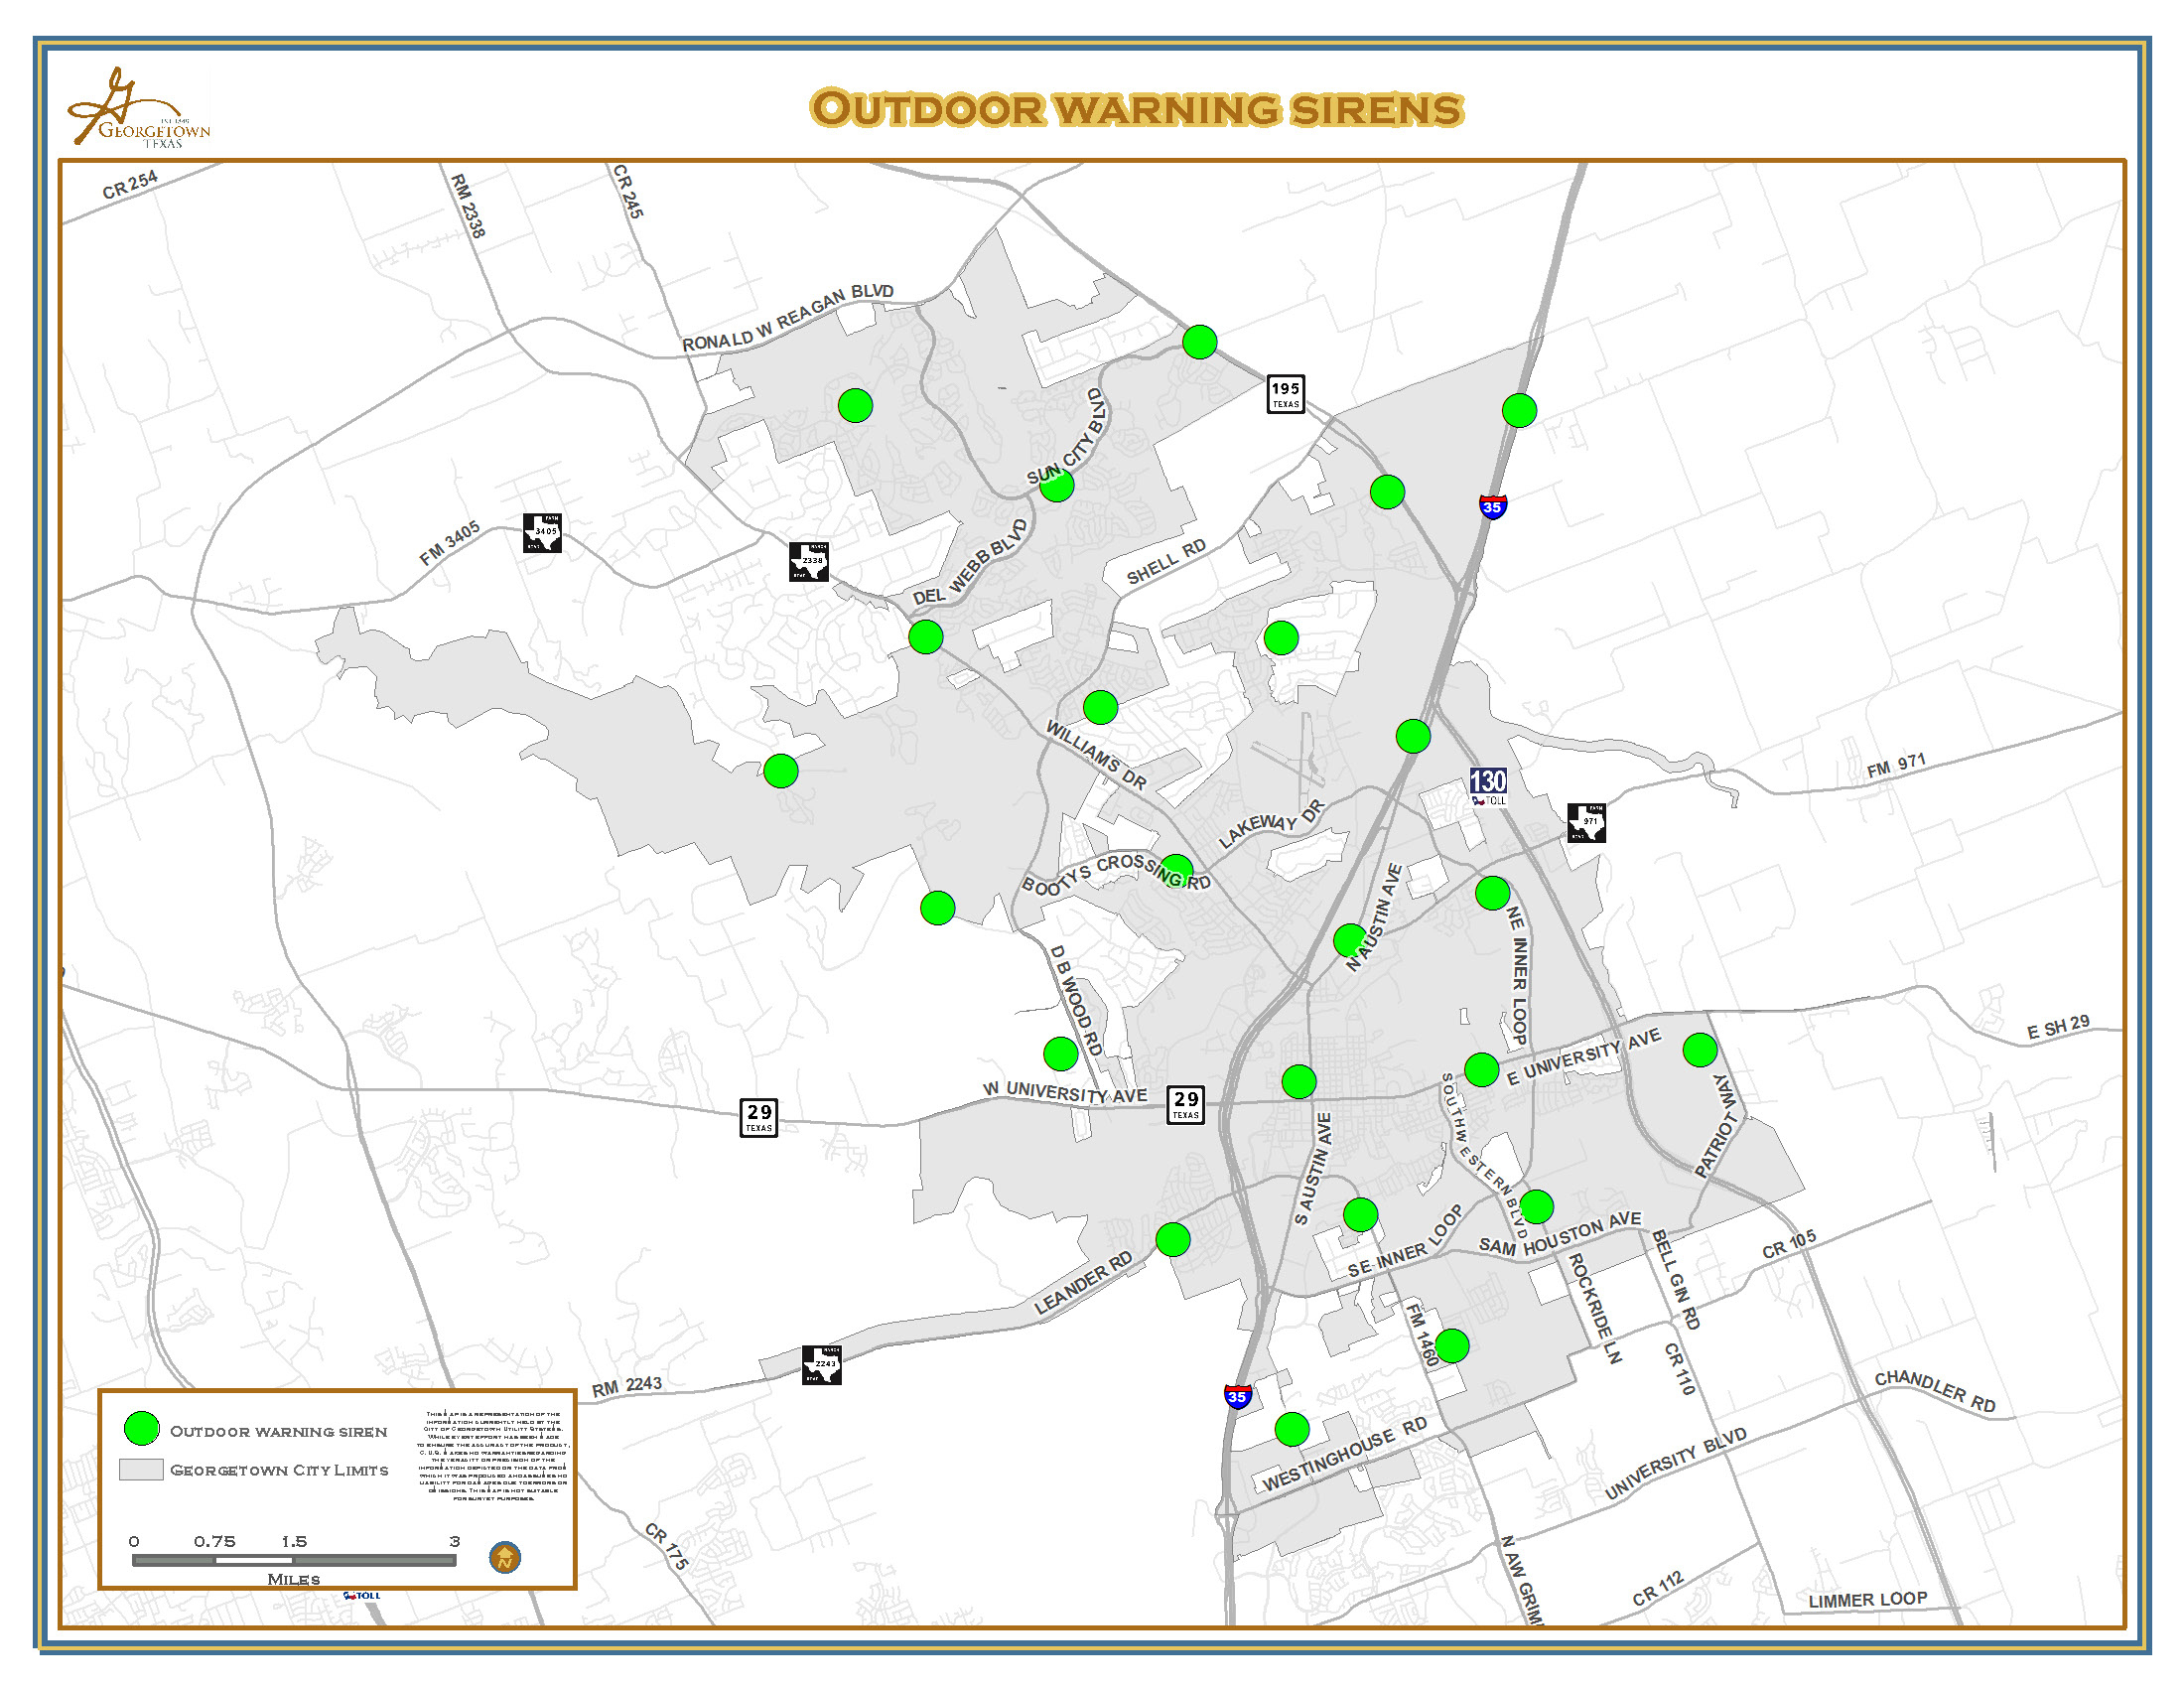 Outdoor Warning Sirens To Be Tested Oct. 7 – City Of Georgetown Texas - Georgetown Texas Map